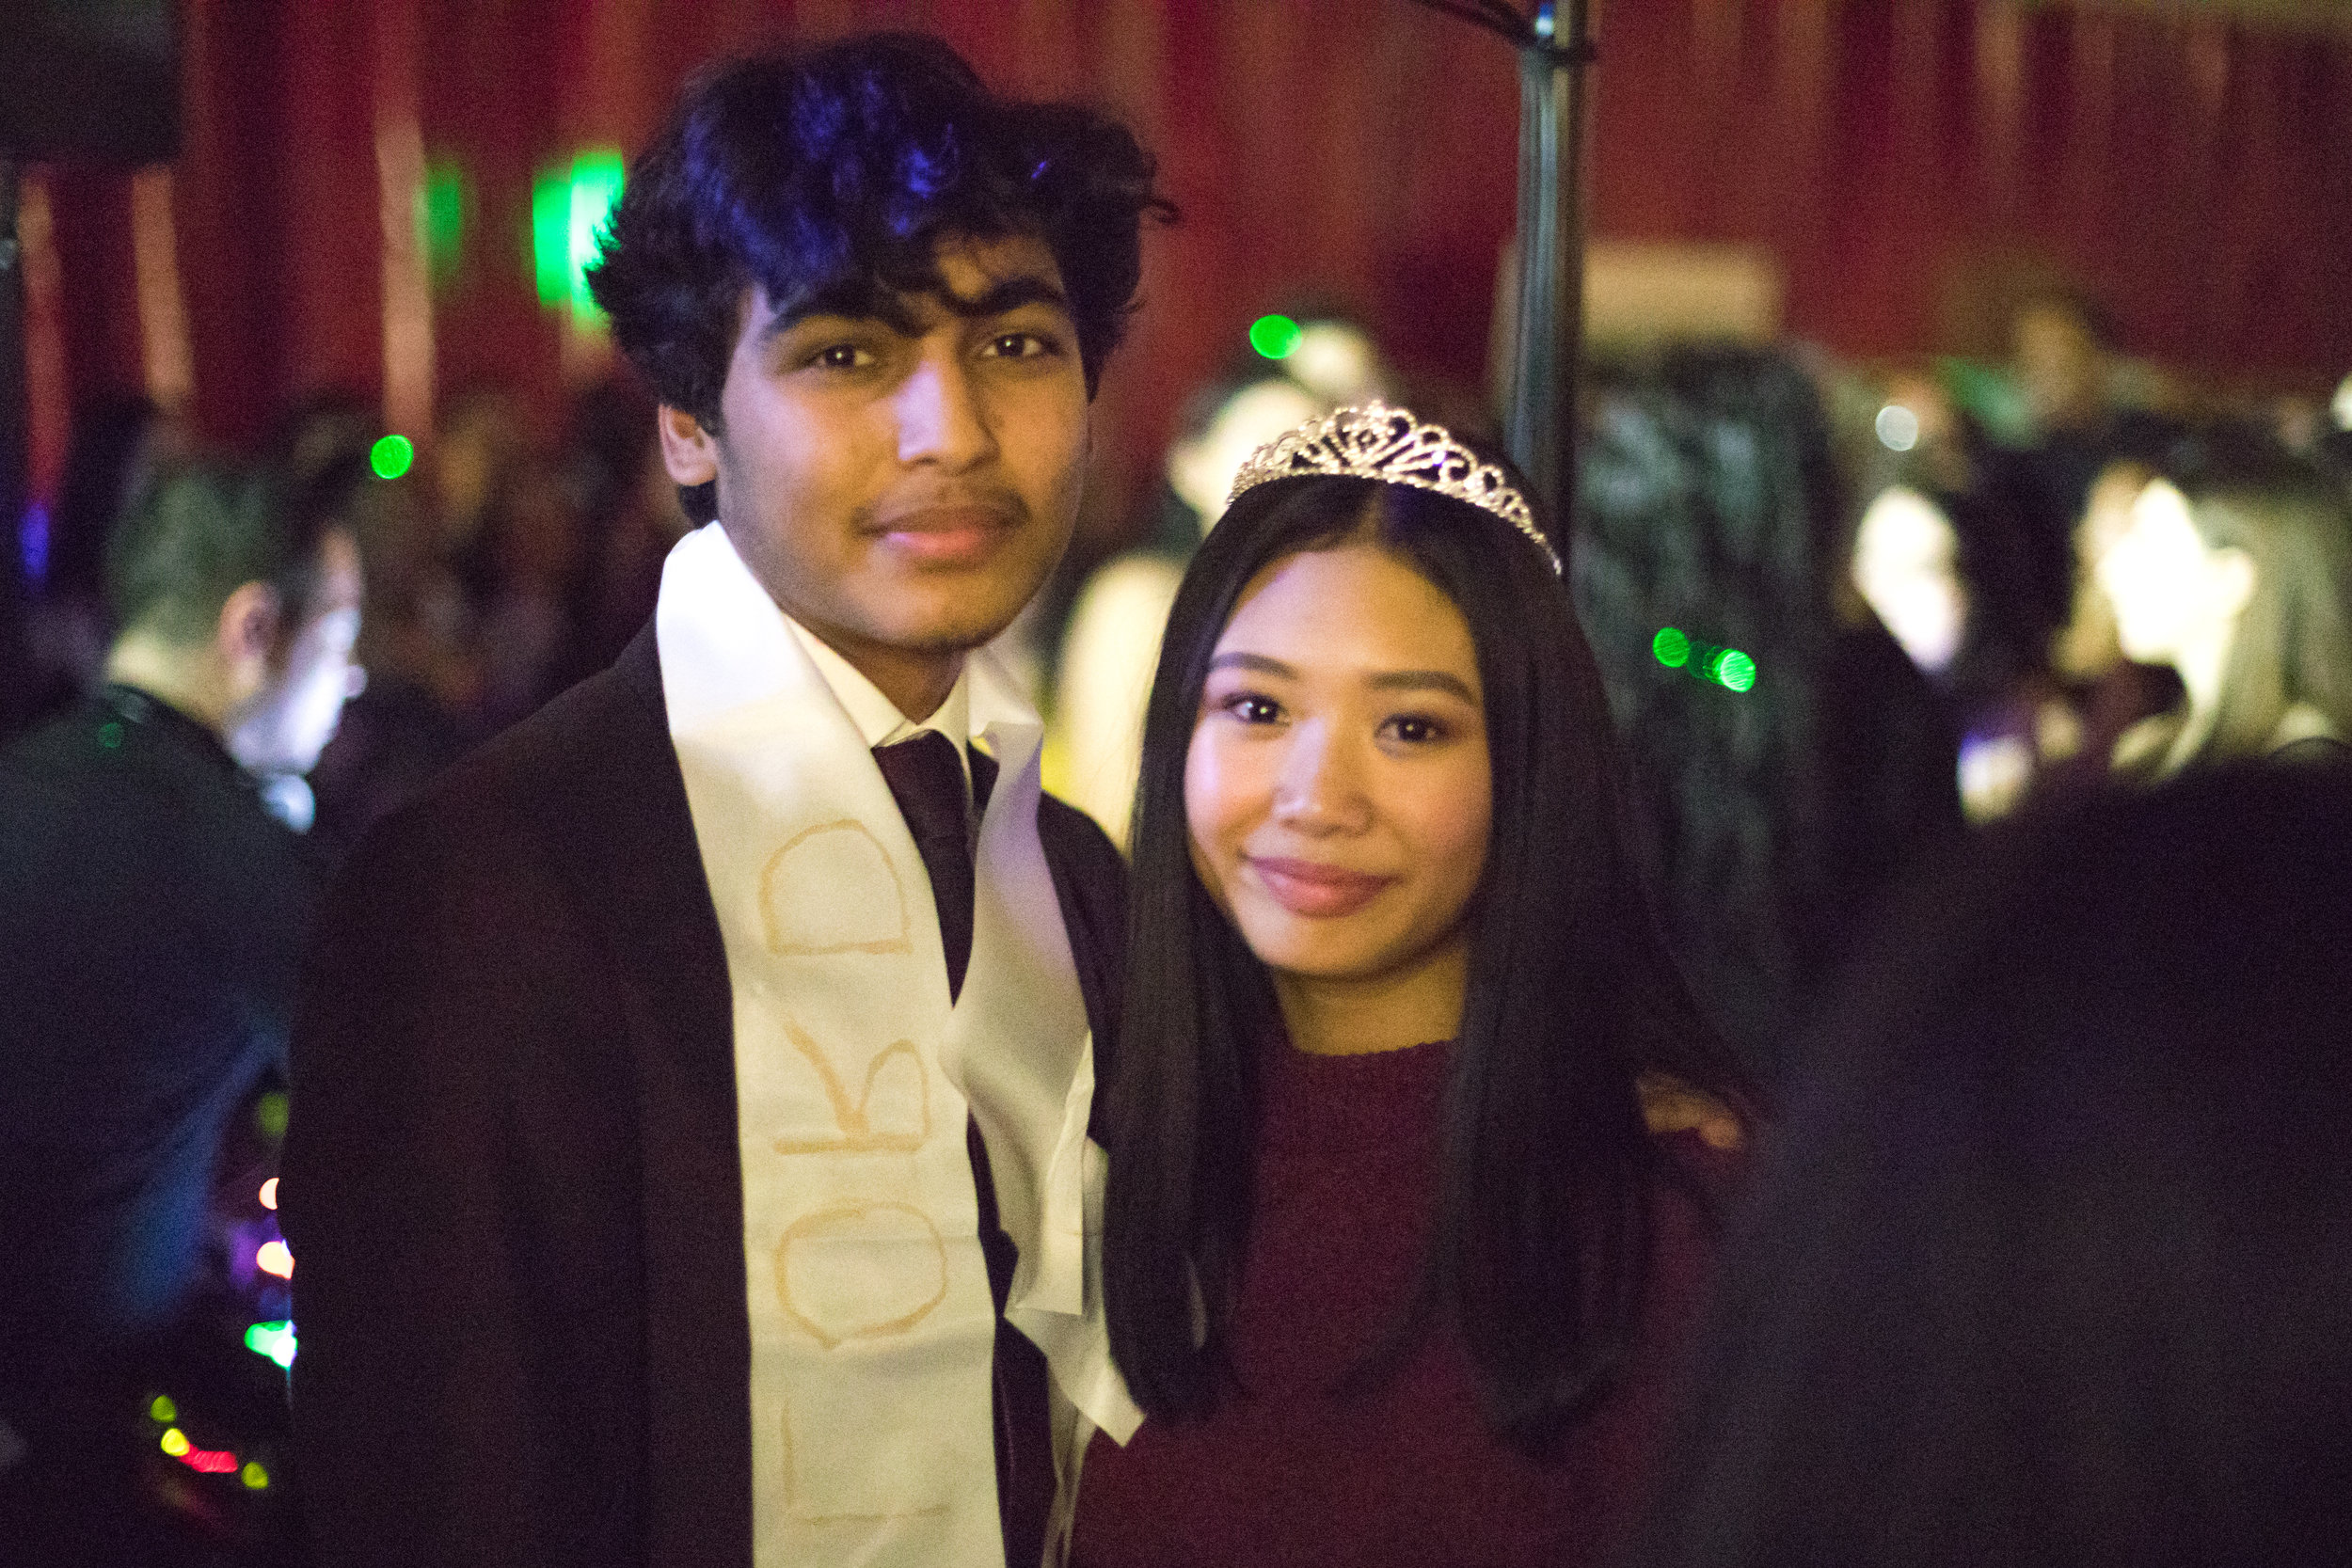 Anmol Singh (Adv. 202 ) and Ann Maxine De Guzman (Adv. 206) were crowned Lord and Lady